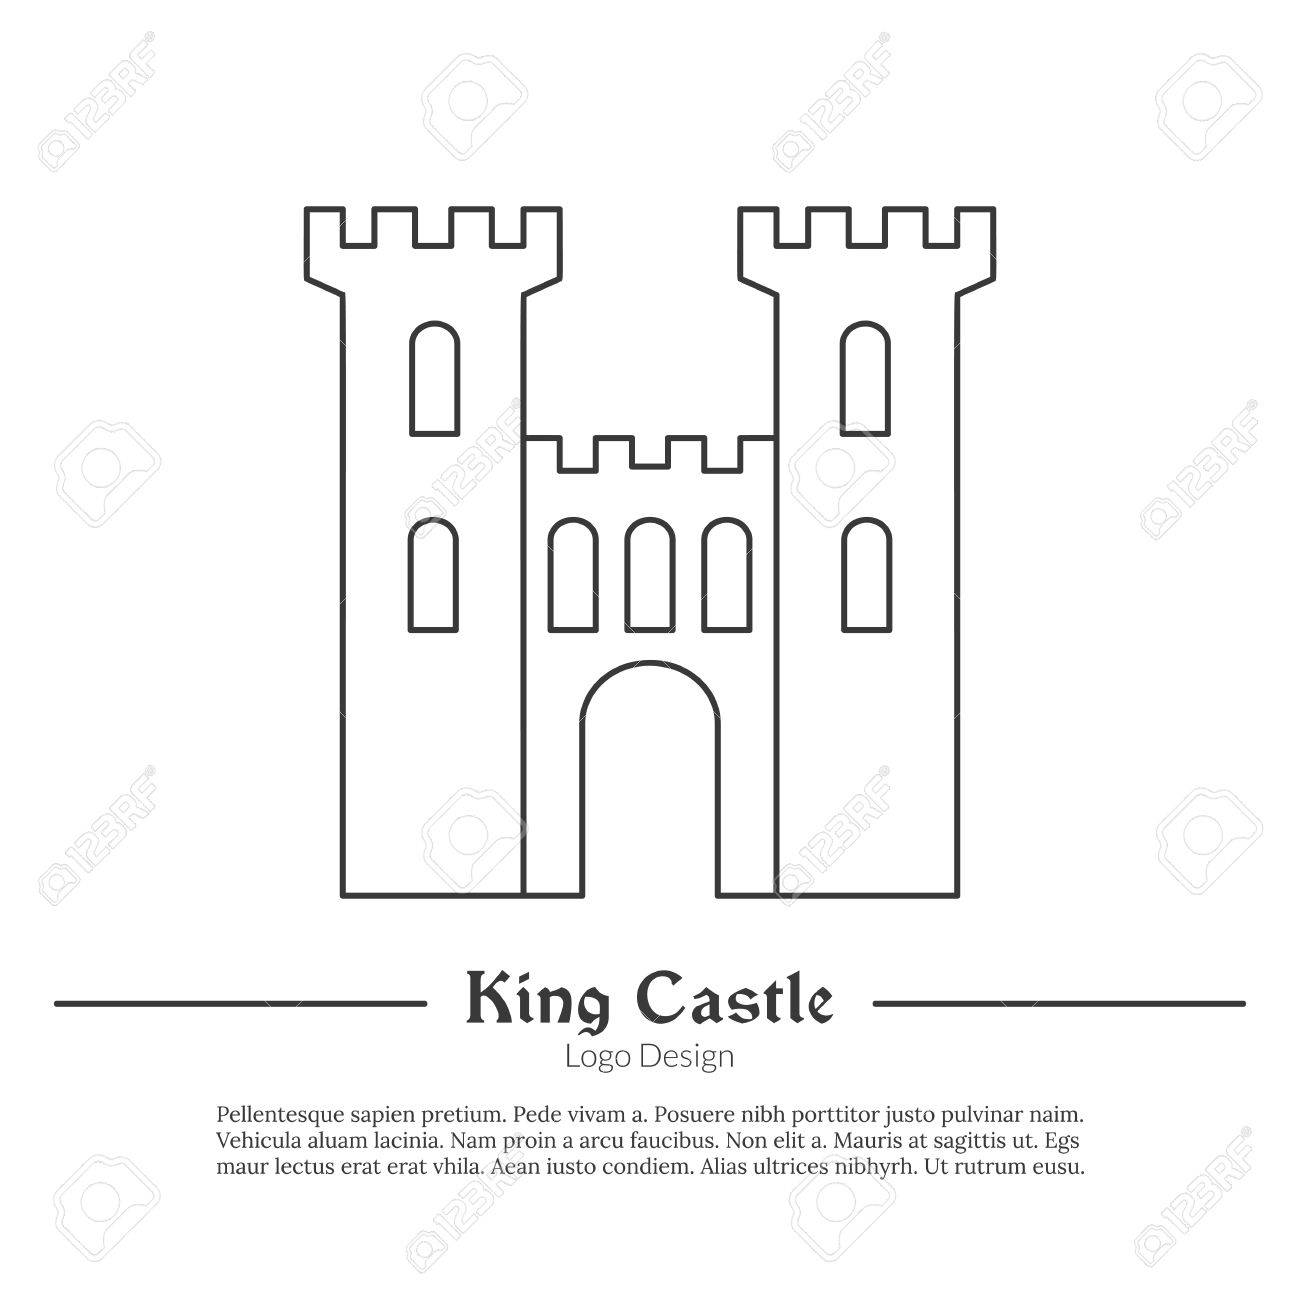 65714876 medieval king castle tower fortress in modern thin line style isolated on white background outline m medieval king castle, tower, fortress in modern thin line style